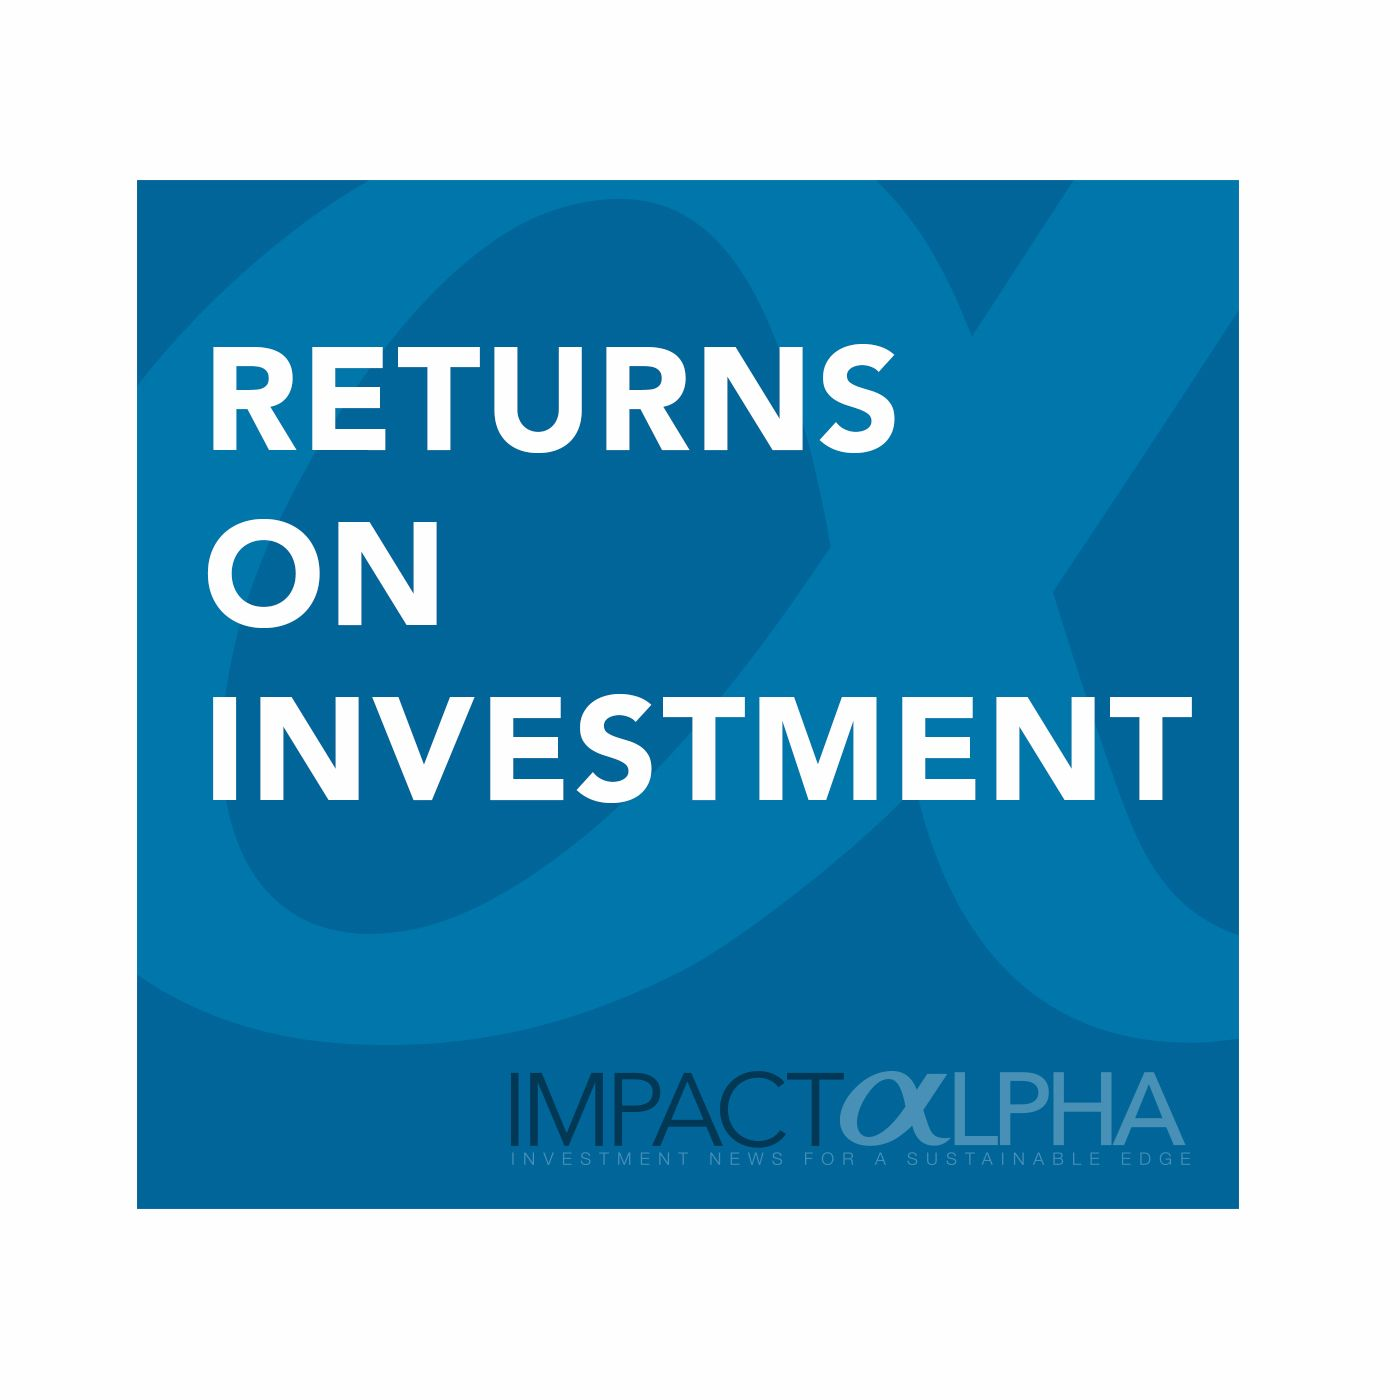 Returns on Investment